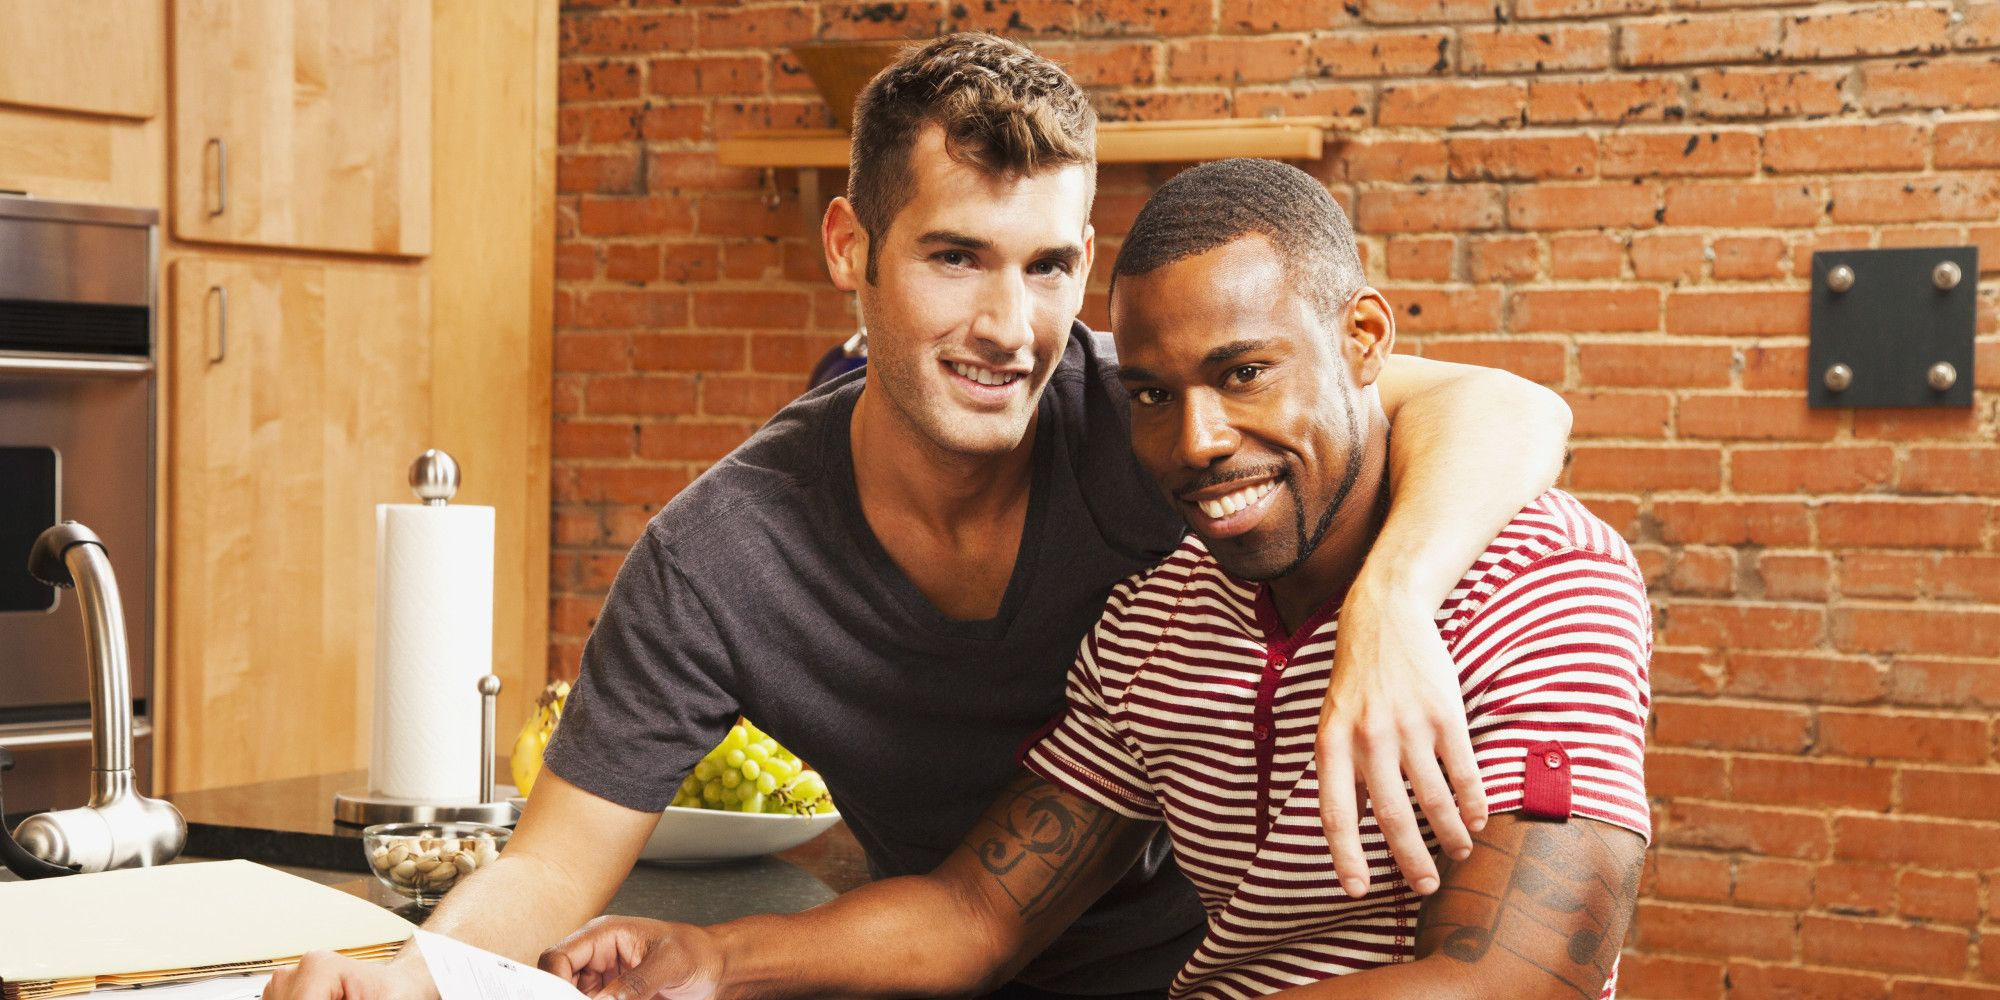 Gay Interracial Hookup Problems